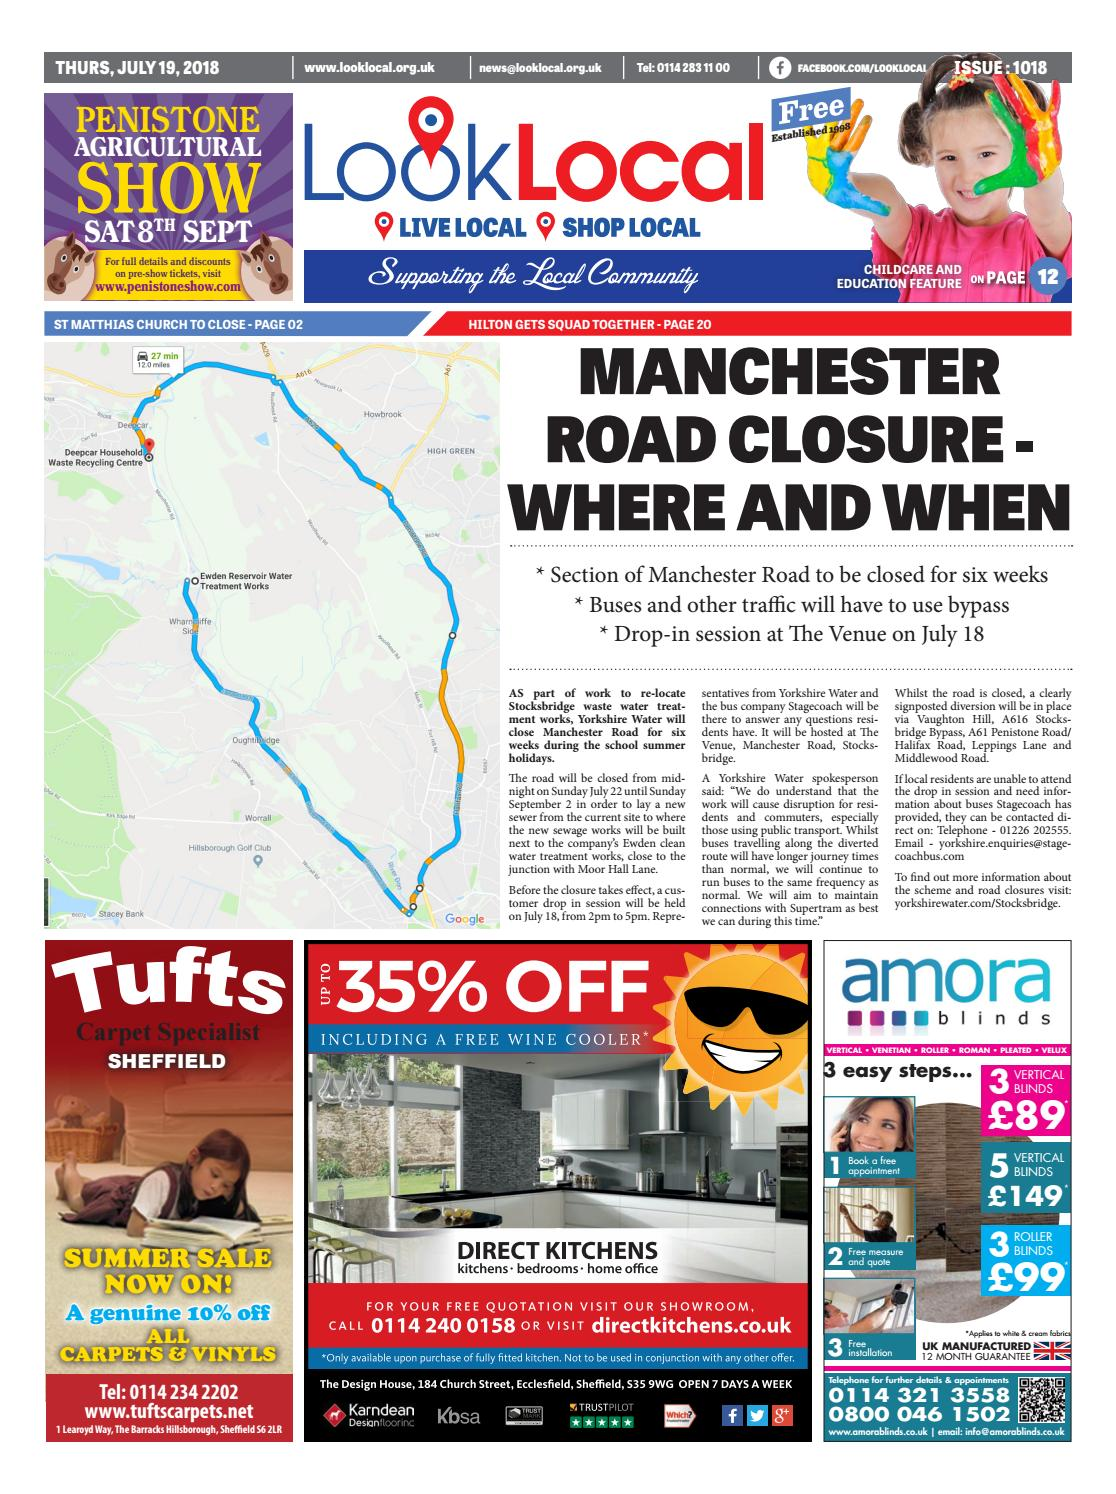 Issue 1018 Thursday 19 July 2018 By Look Local Newspaper Issuu Howreplaceblownfuse6427